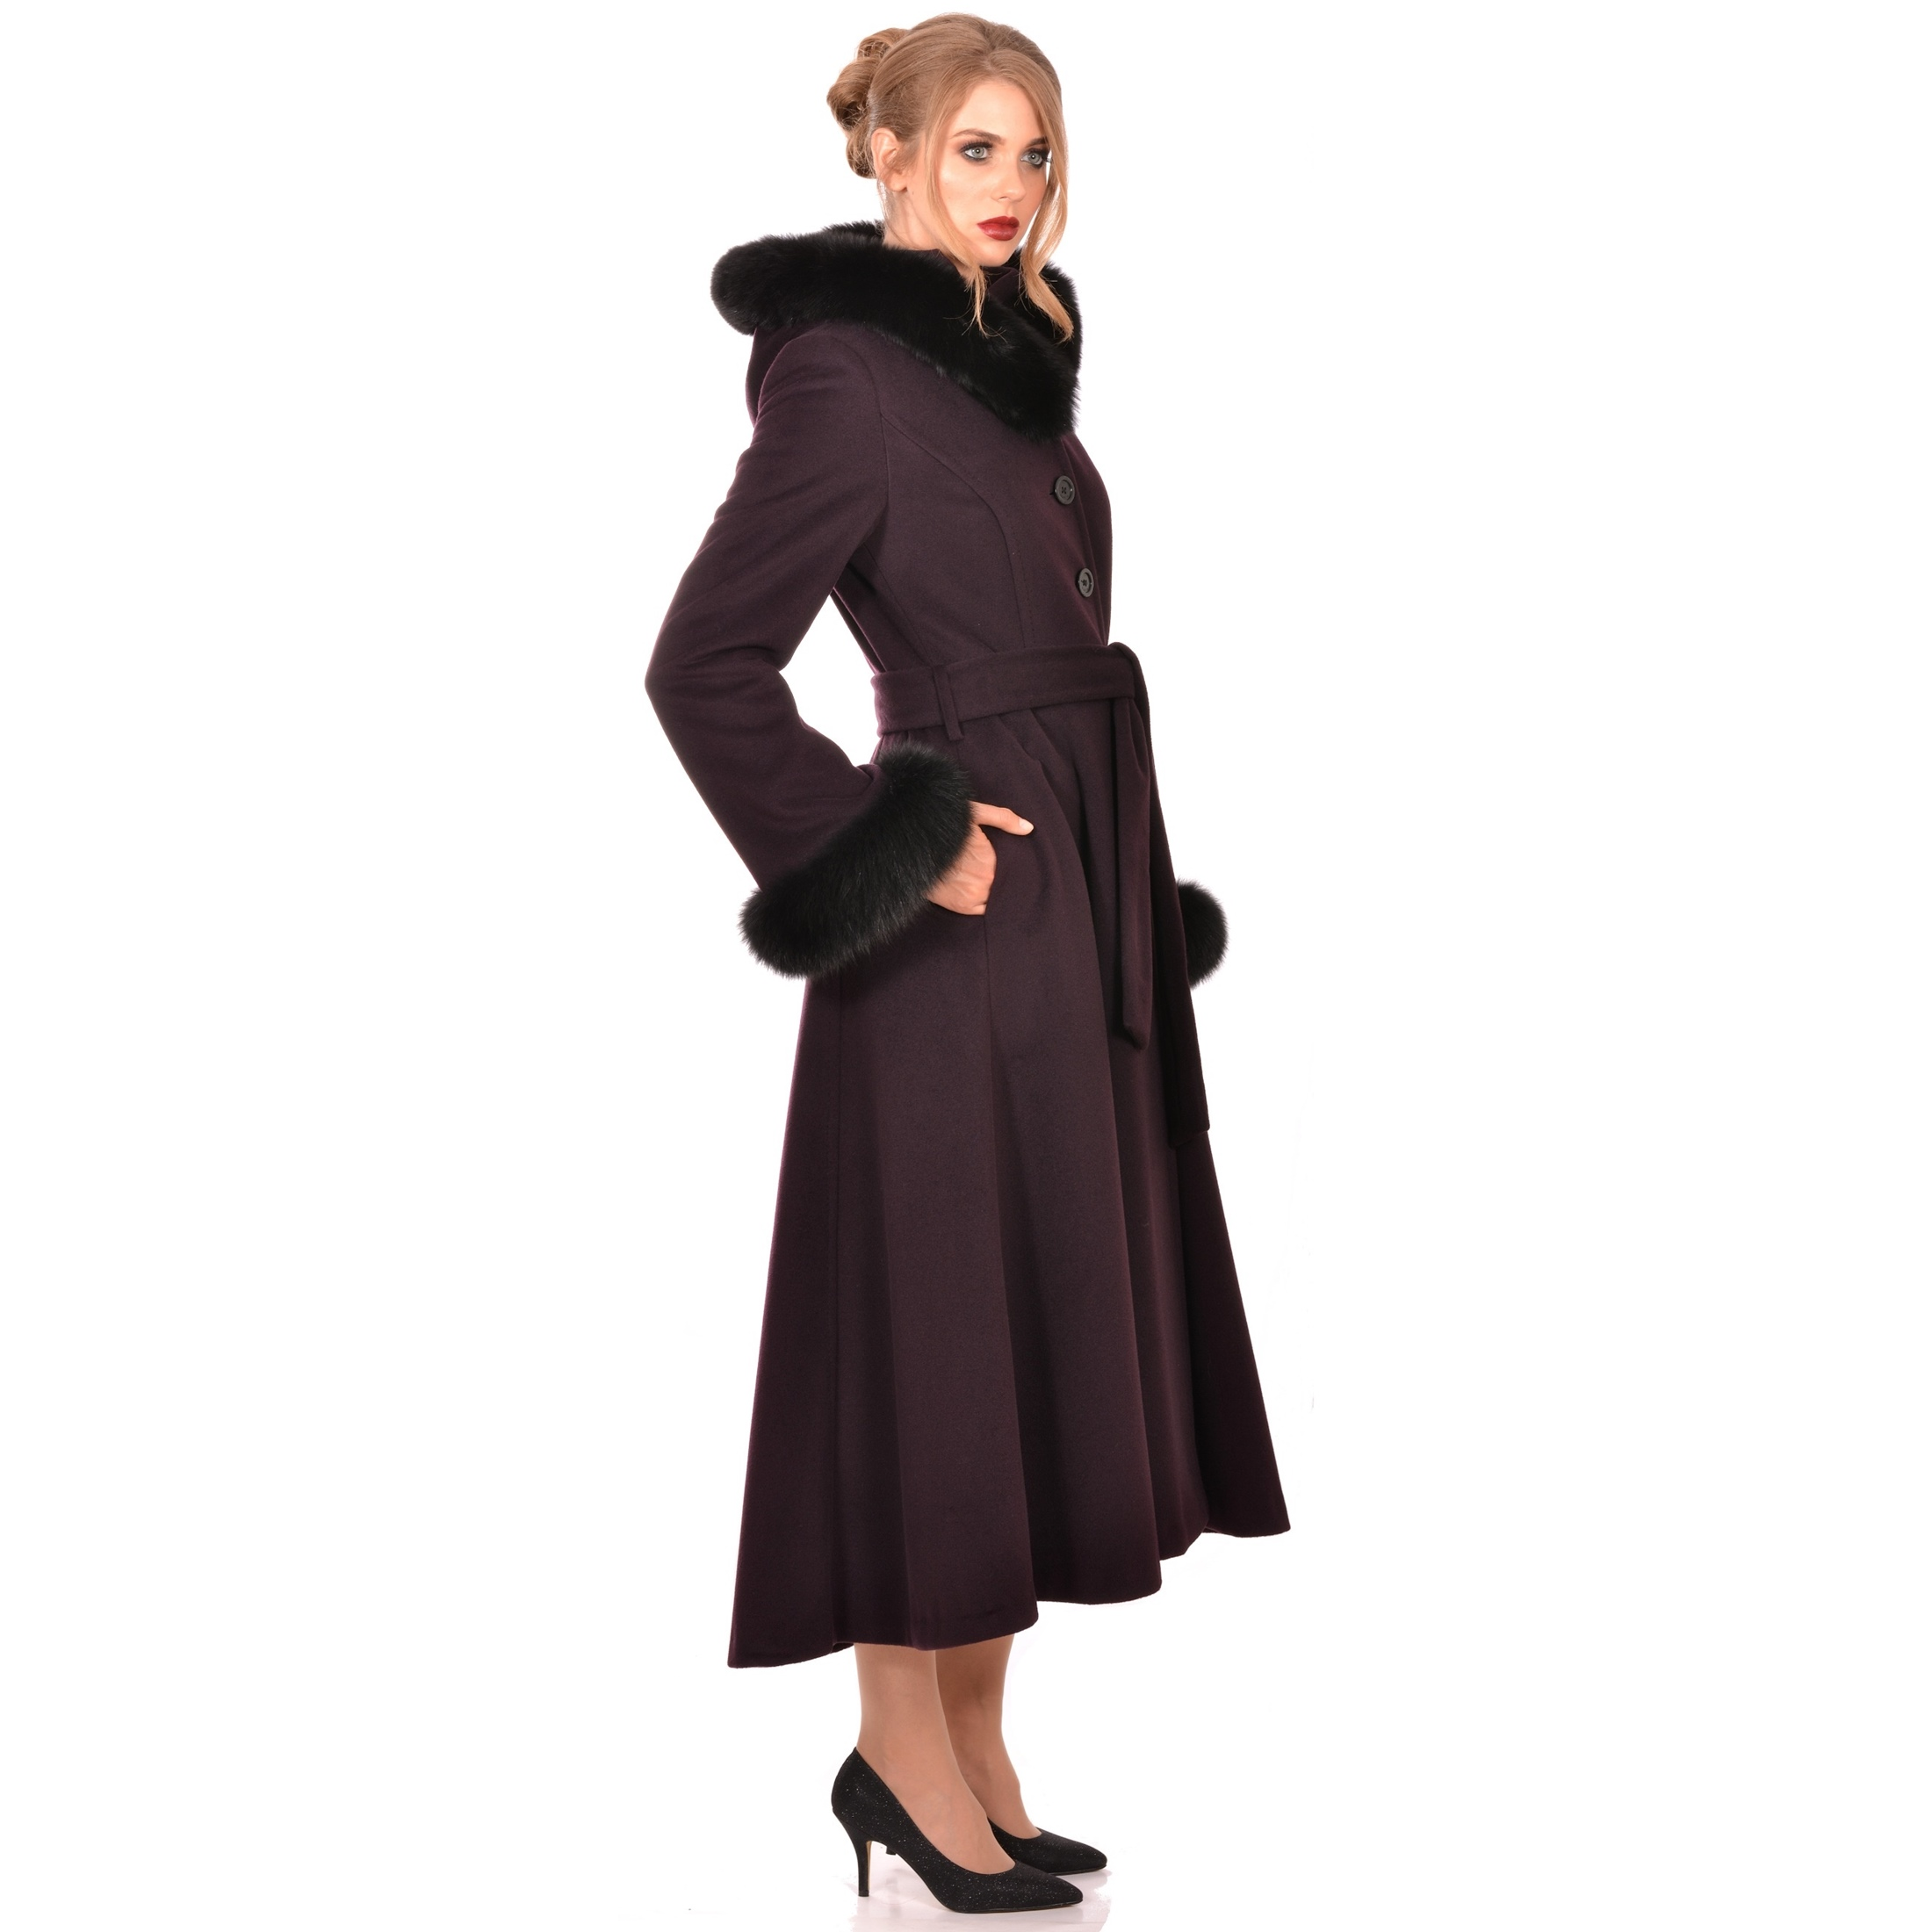 lady m long coat, lady m dugi kaput